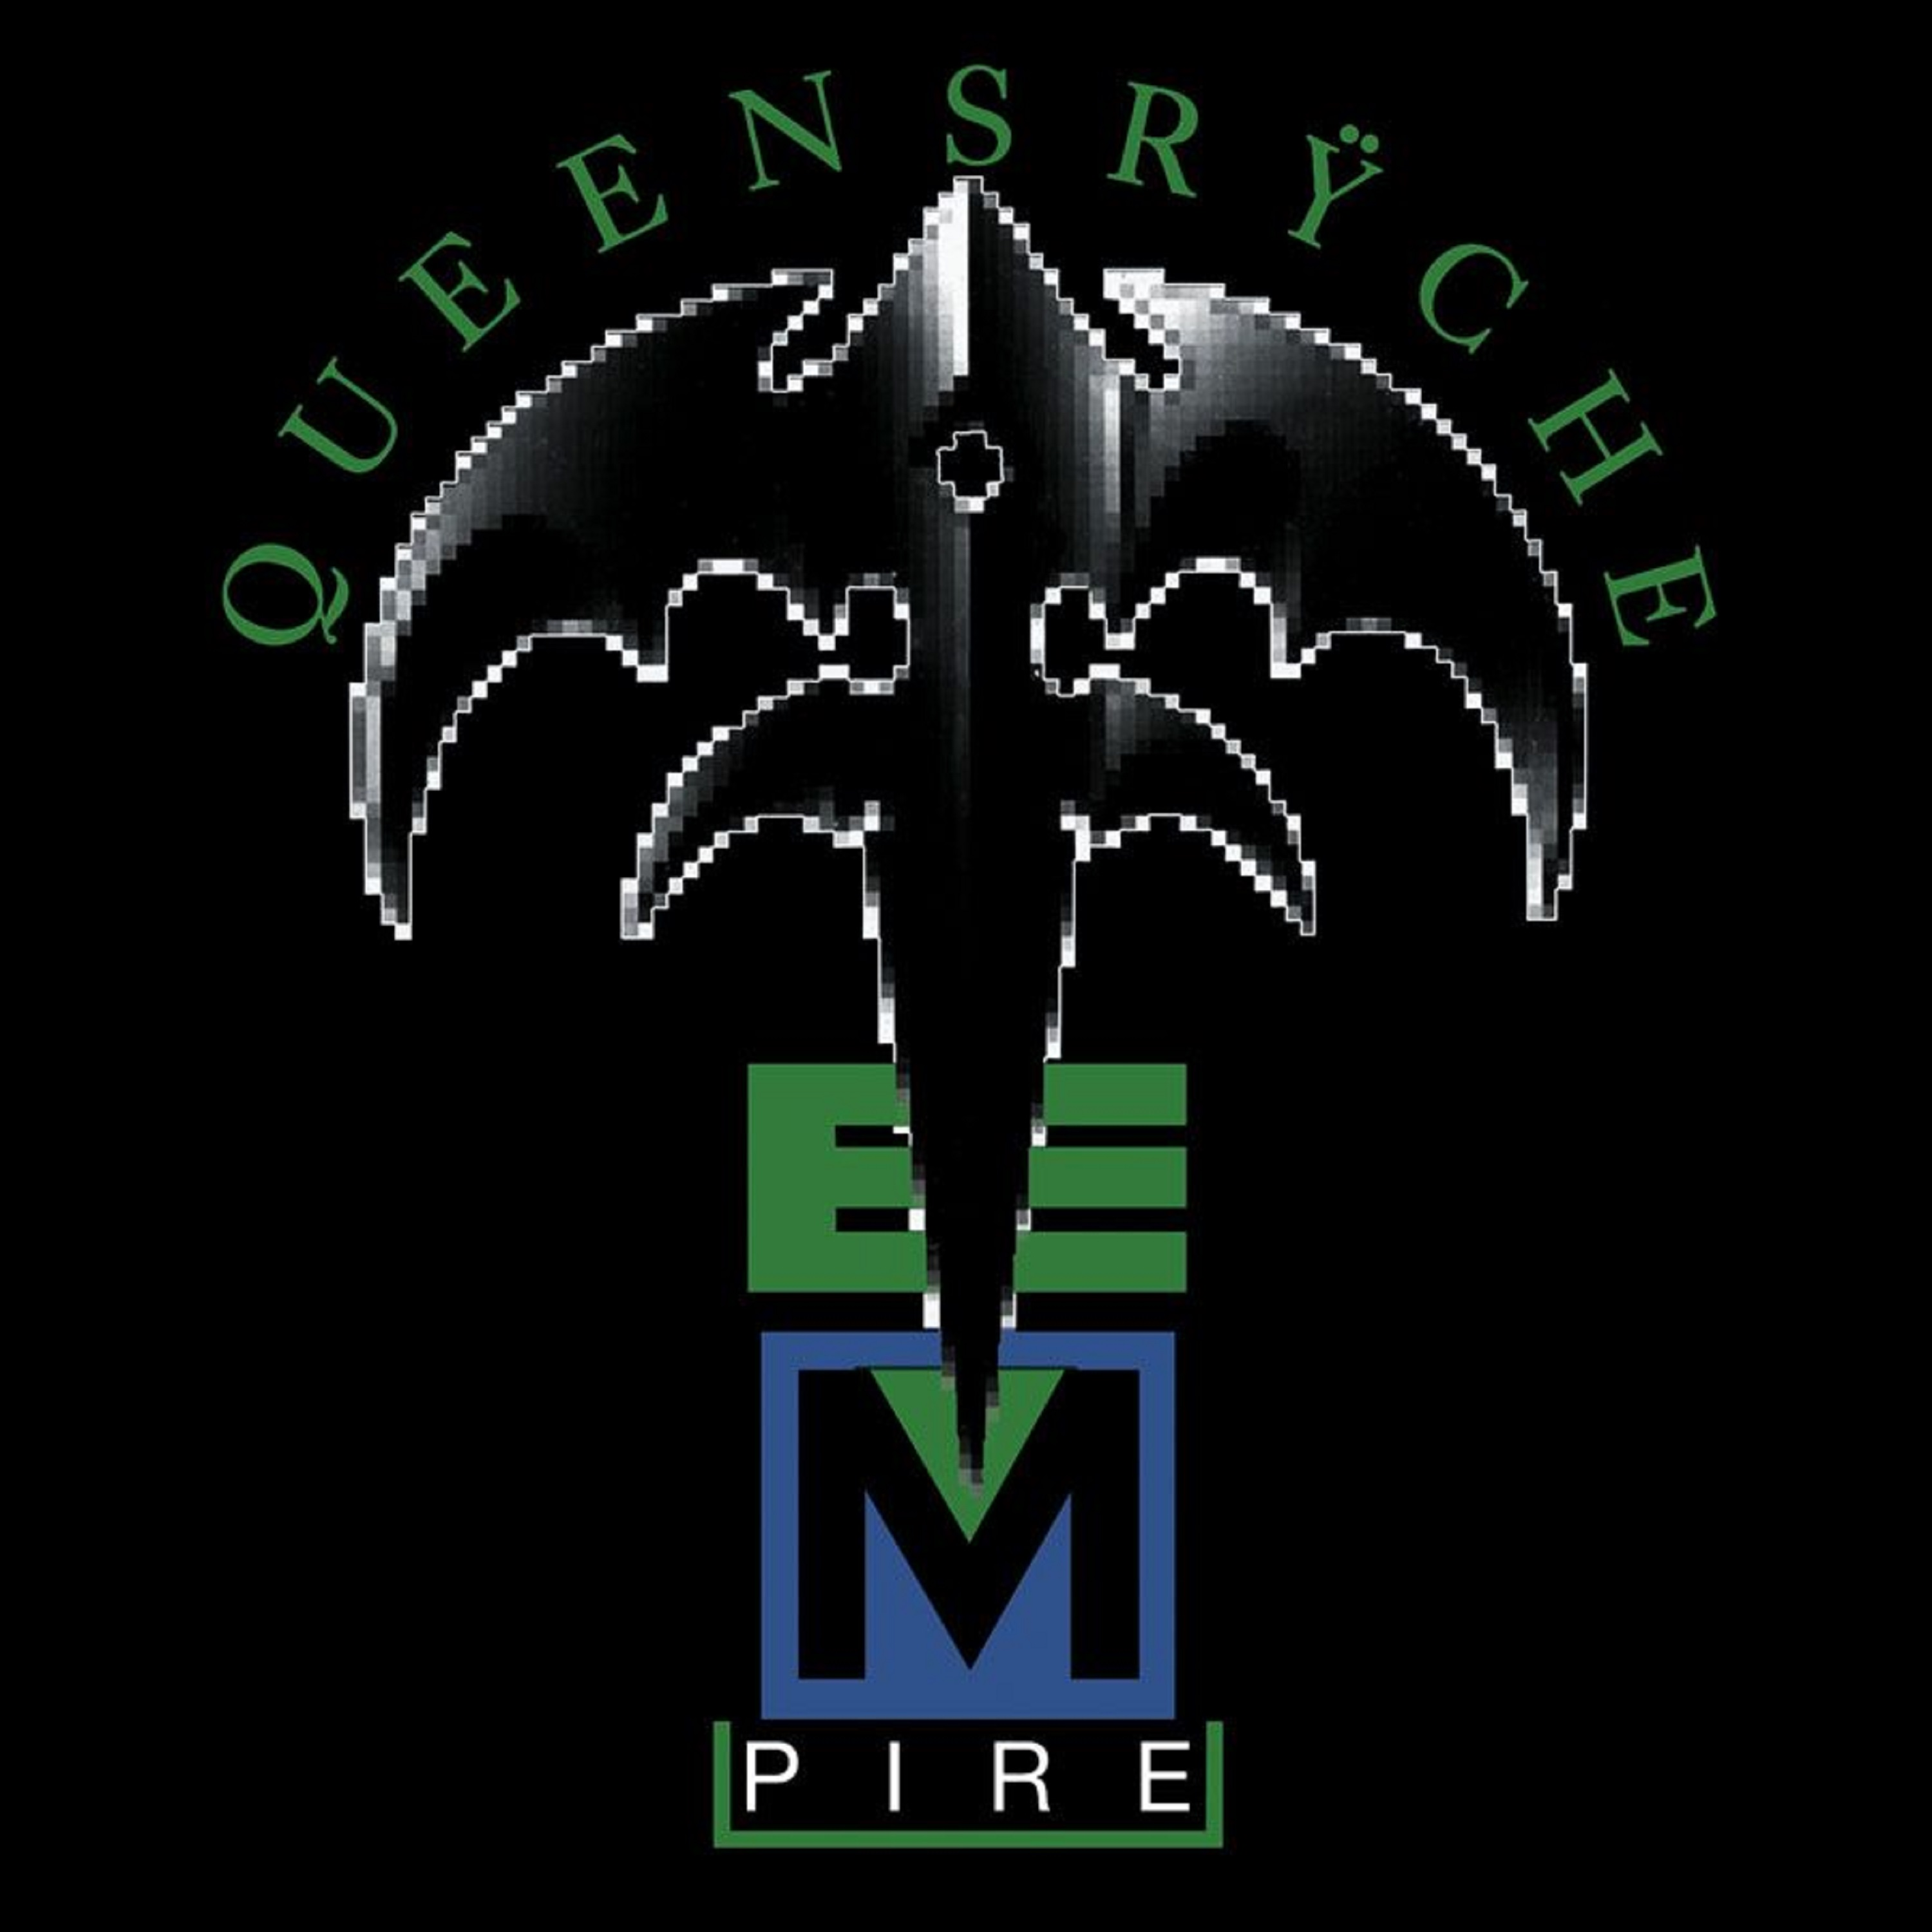 Queensryche - Empire (180 Gram Translucent Red Audiophile Vinyl/30th Anniversary Limited Edition/Gatefold Cover)